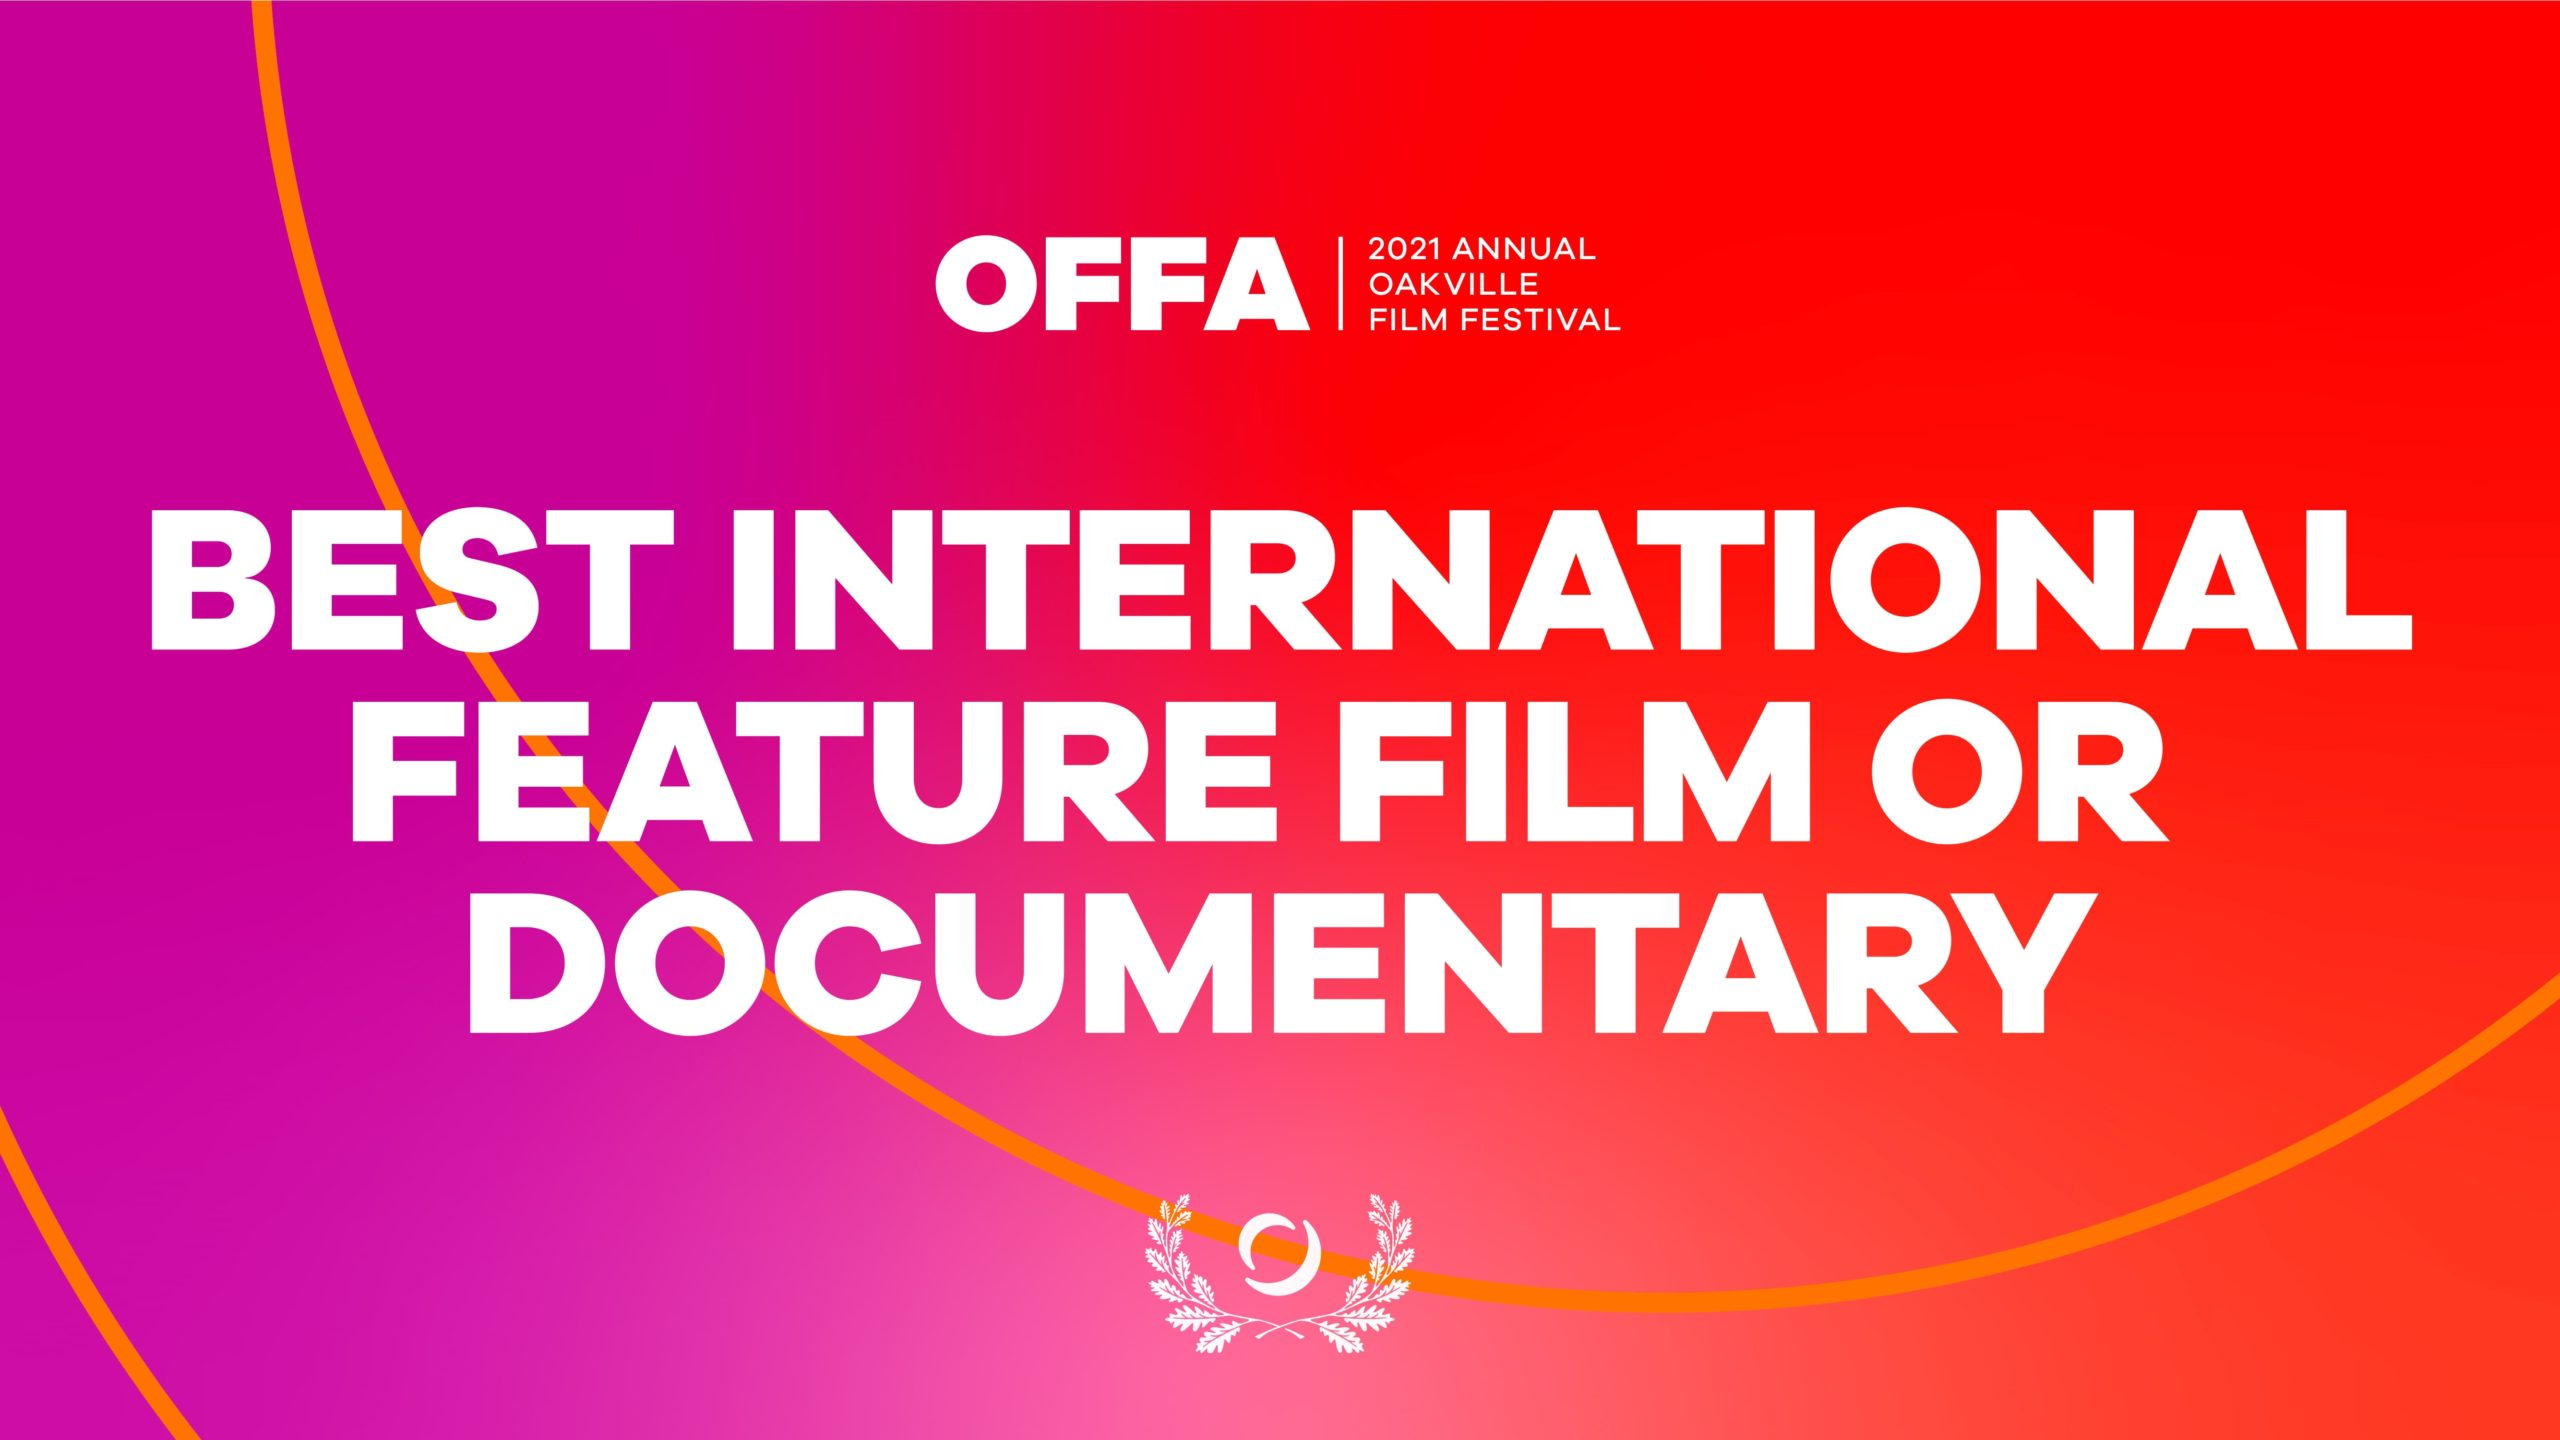 OFFA 2021 Best International Feature Film or Documentary